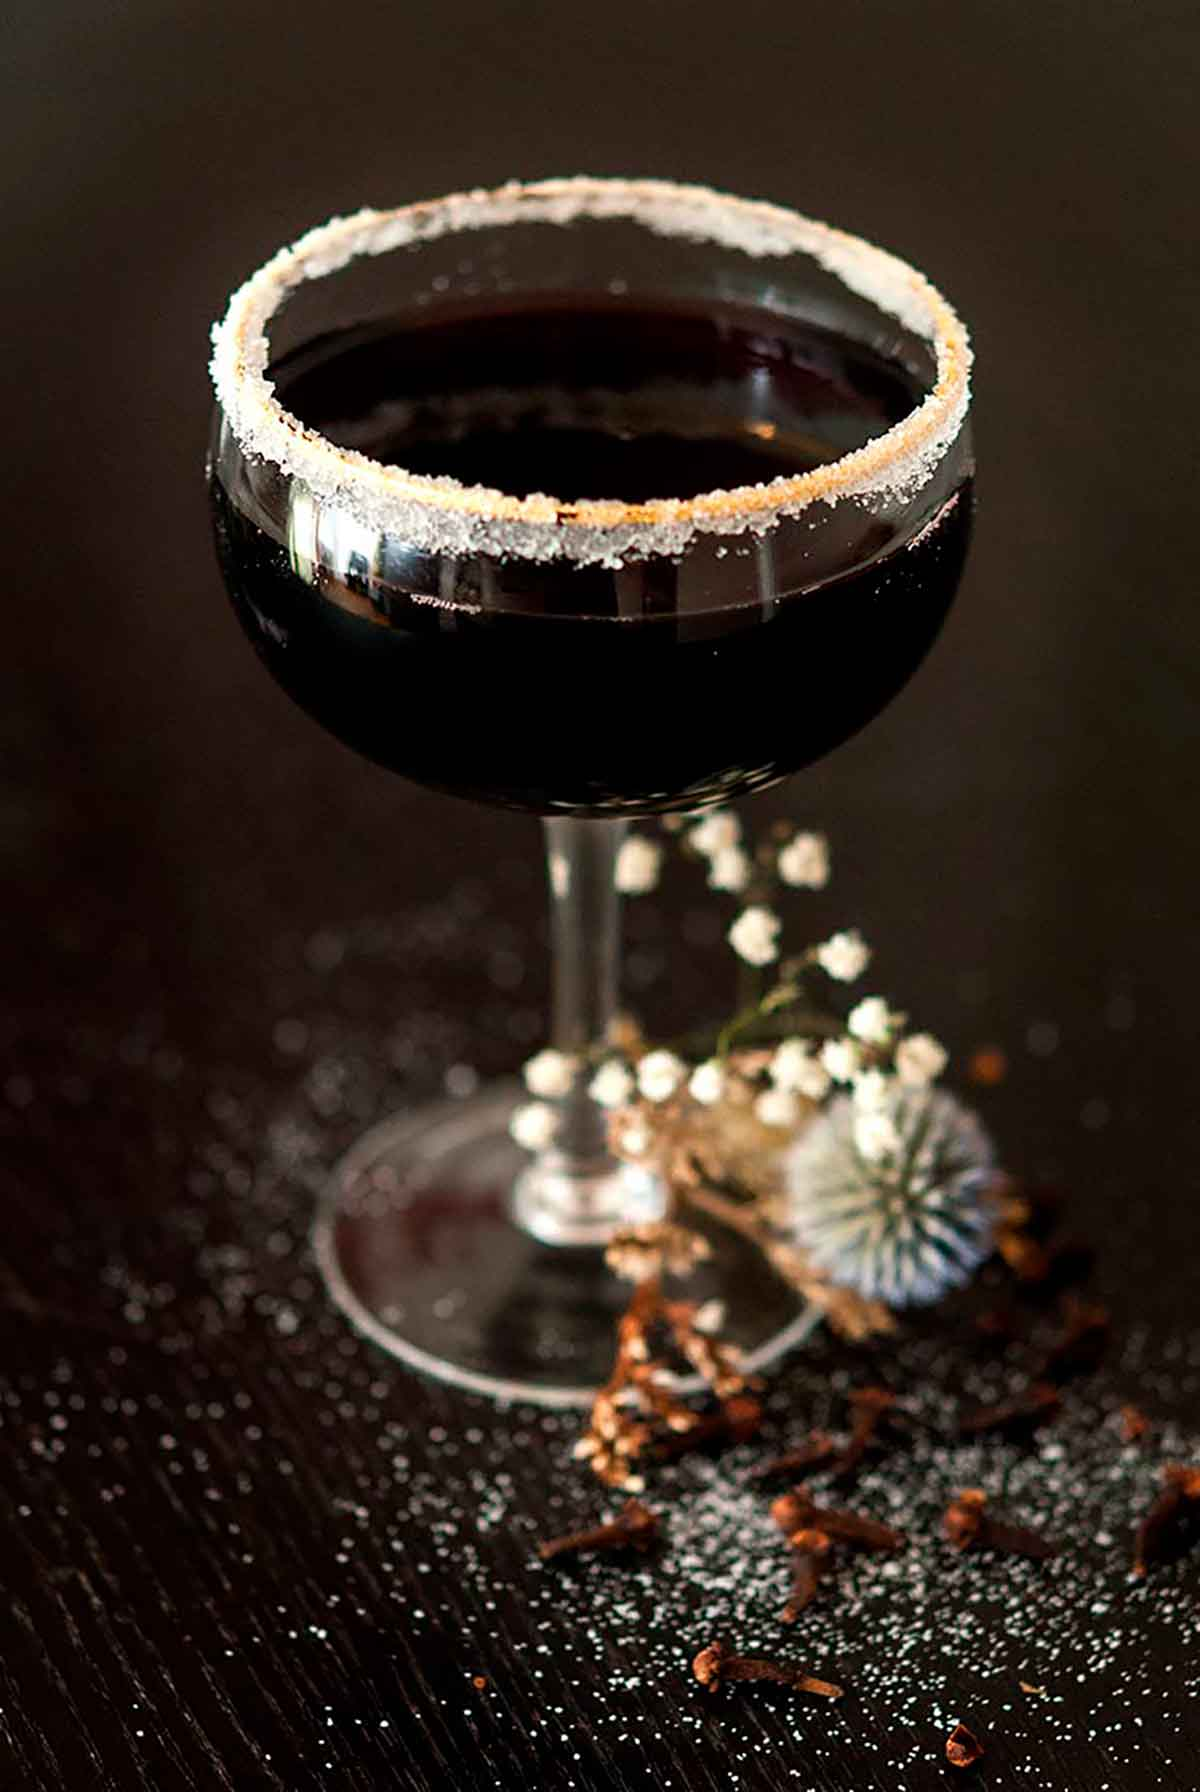 A sugar-rimmed, black cocktail surrounded by dry baby's breath on a sugar-sprinkled table.